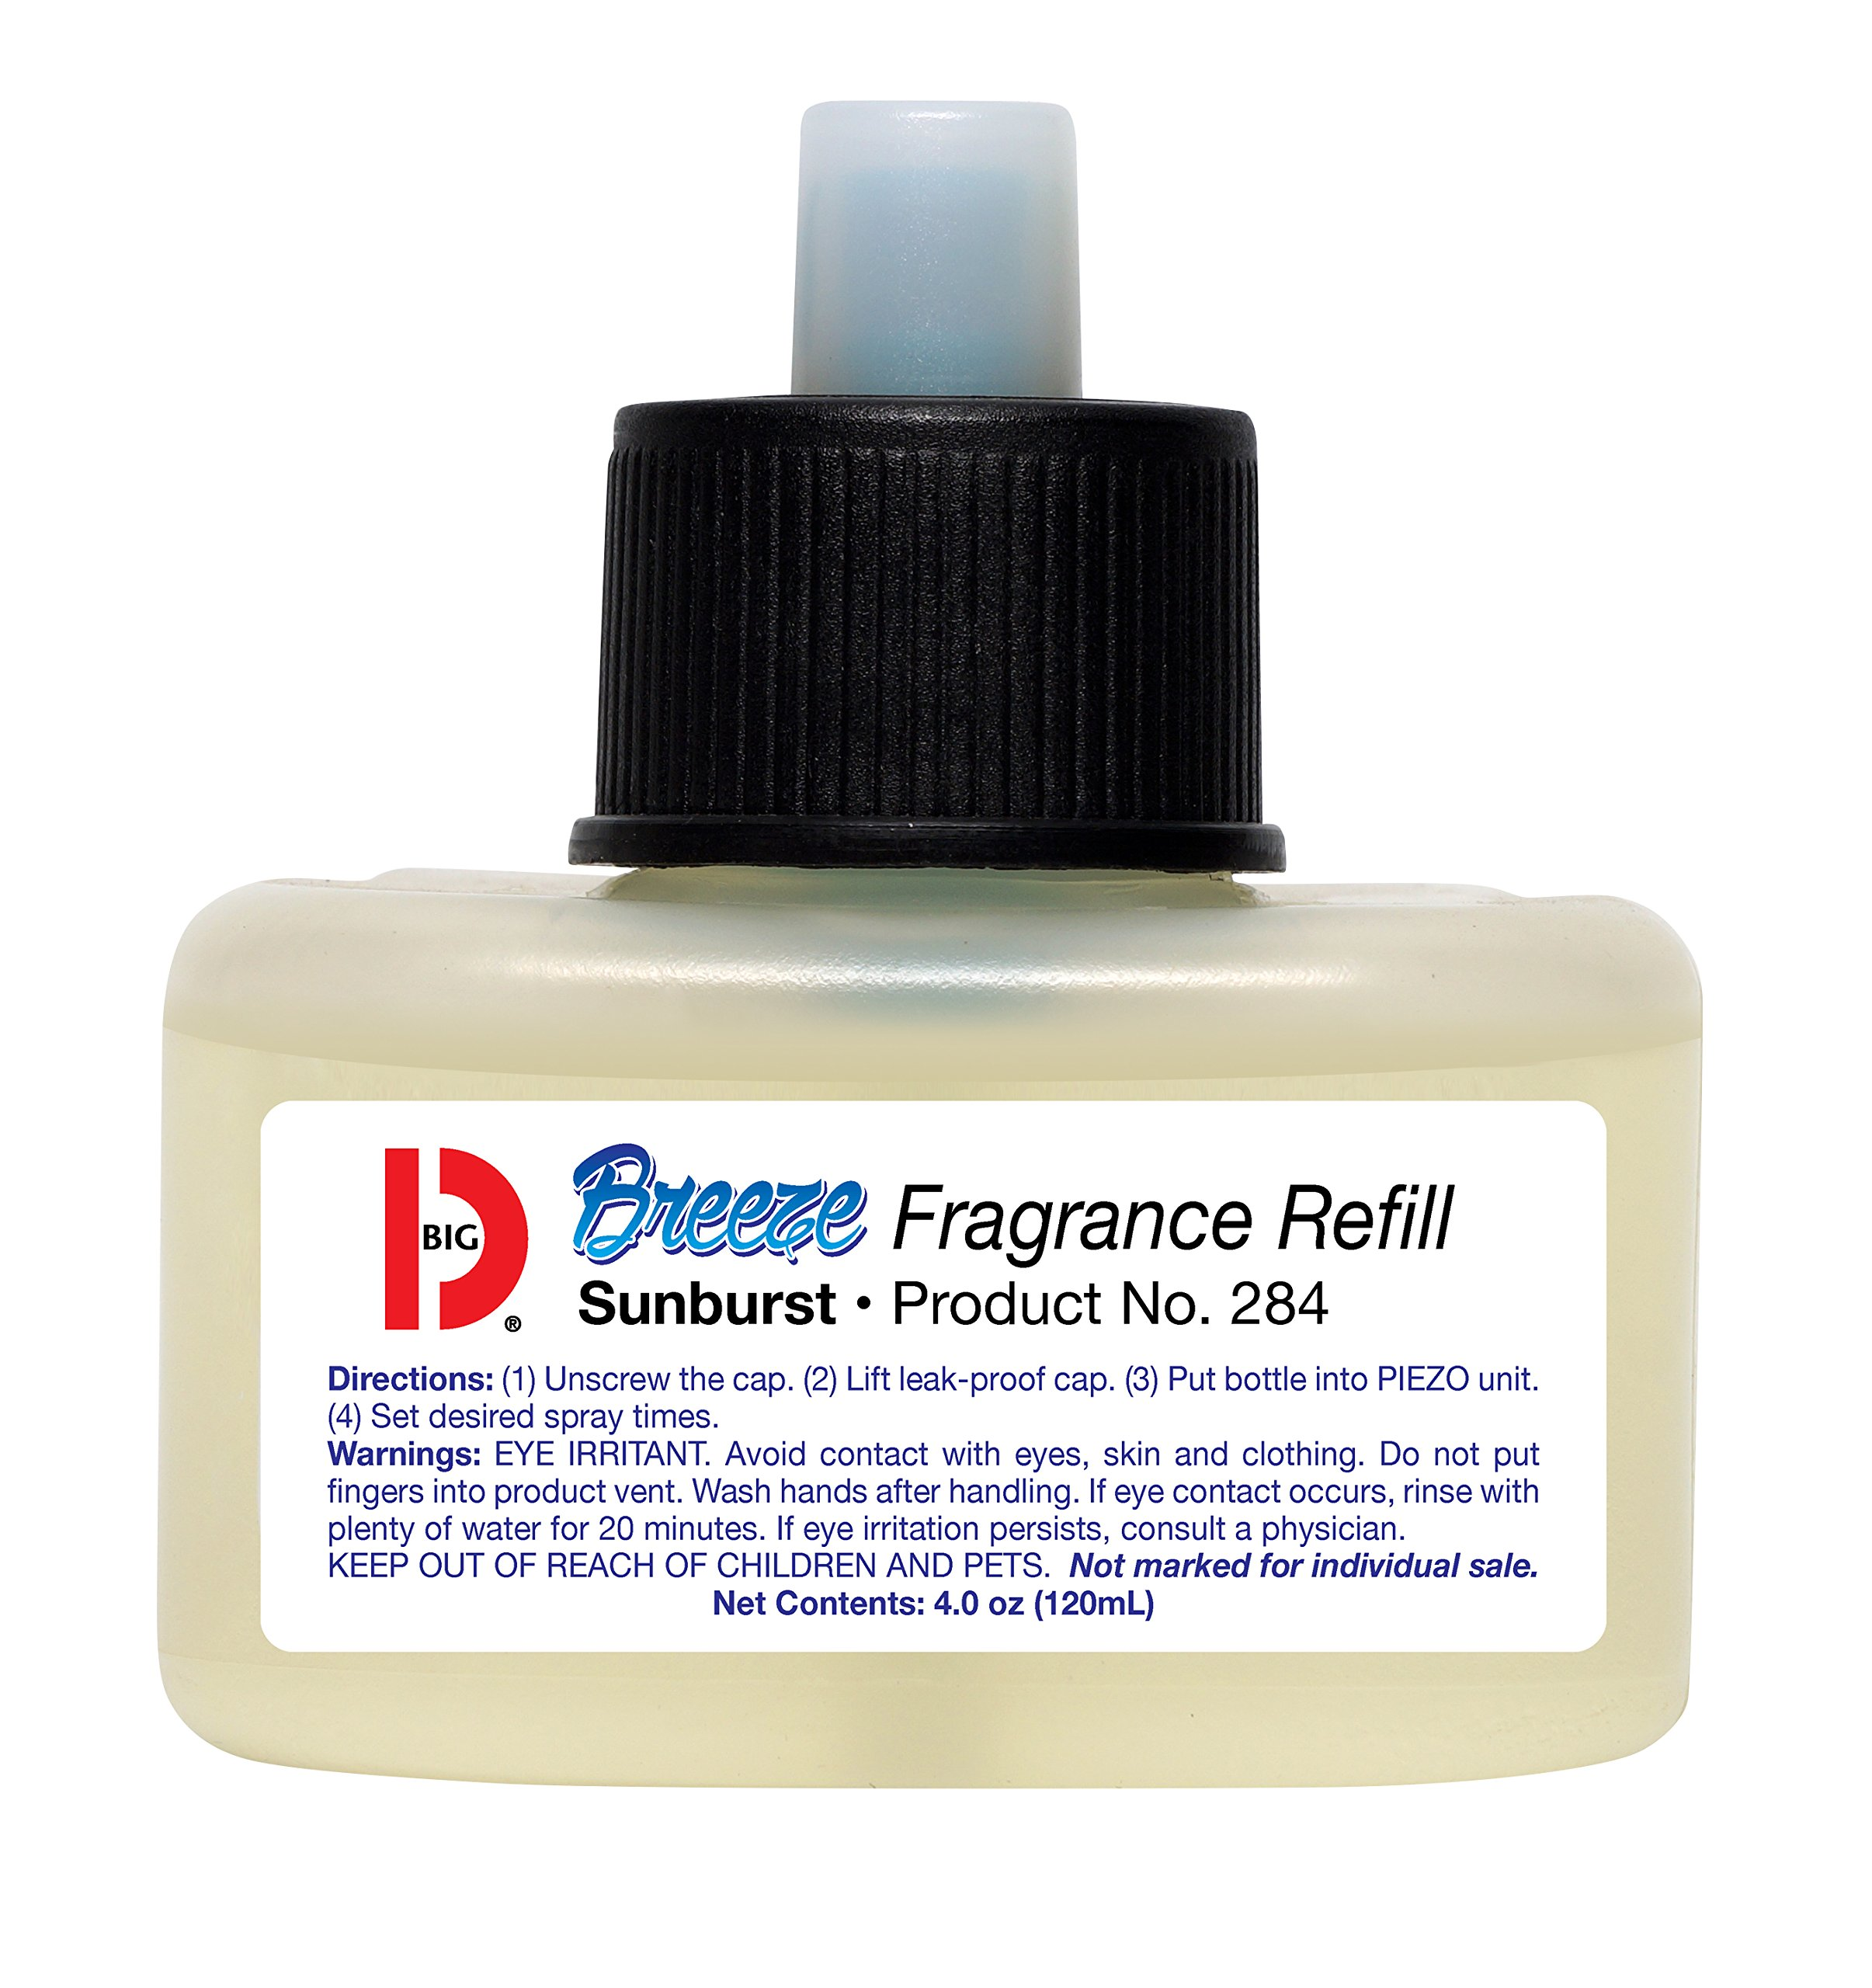 Big D 284 Fragrance Refill for Breeze Dispenser, Sunburst Fragrance (pack of 6) - Automatic Air Freshener with Piezo Technology - Ideal for restrooms, offices, schools, restaurants, hotels, stores